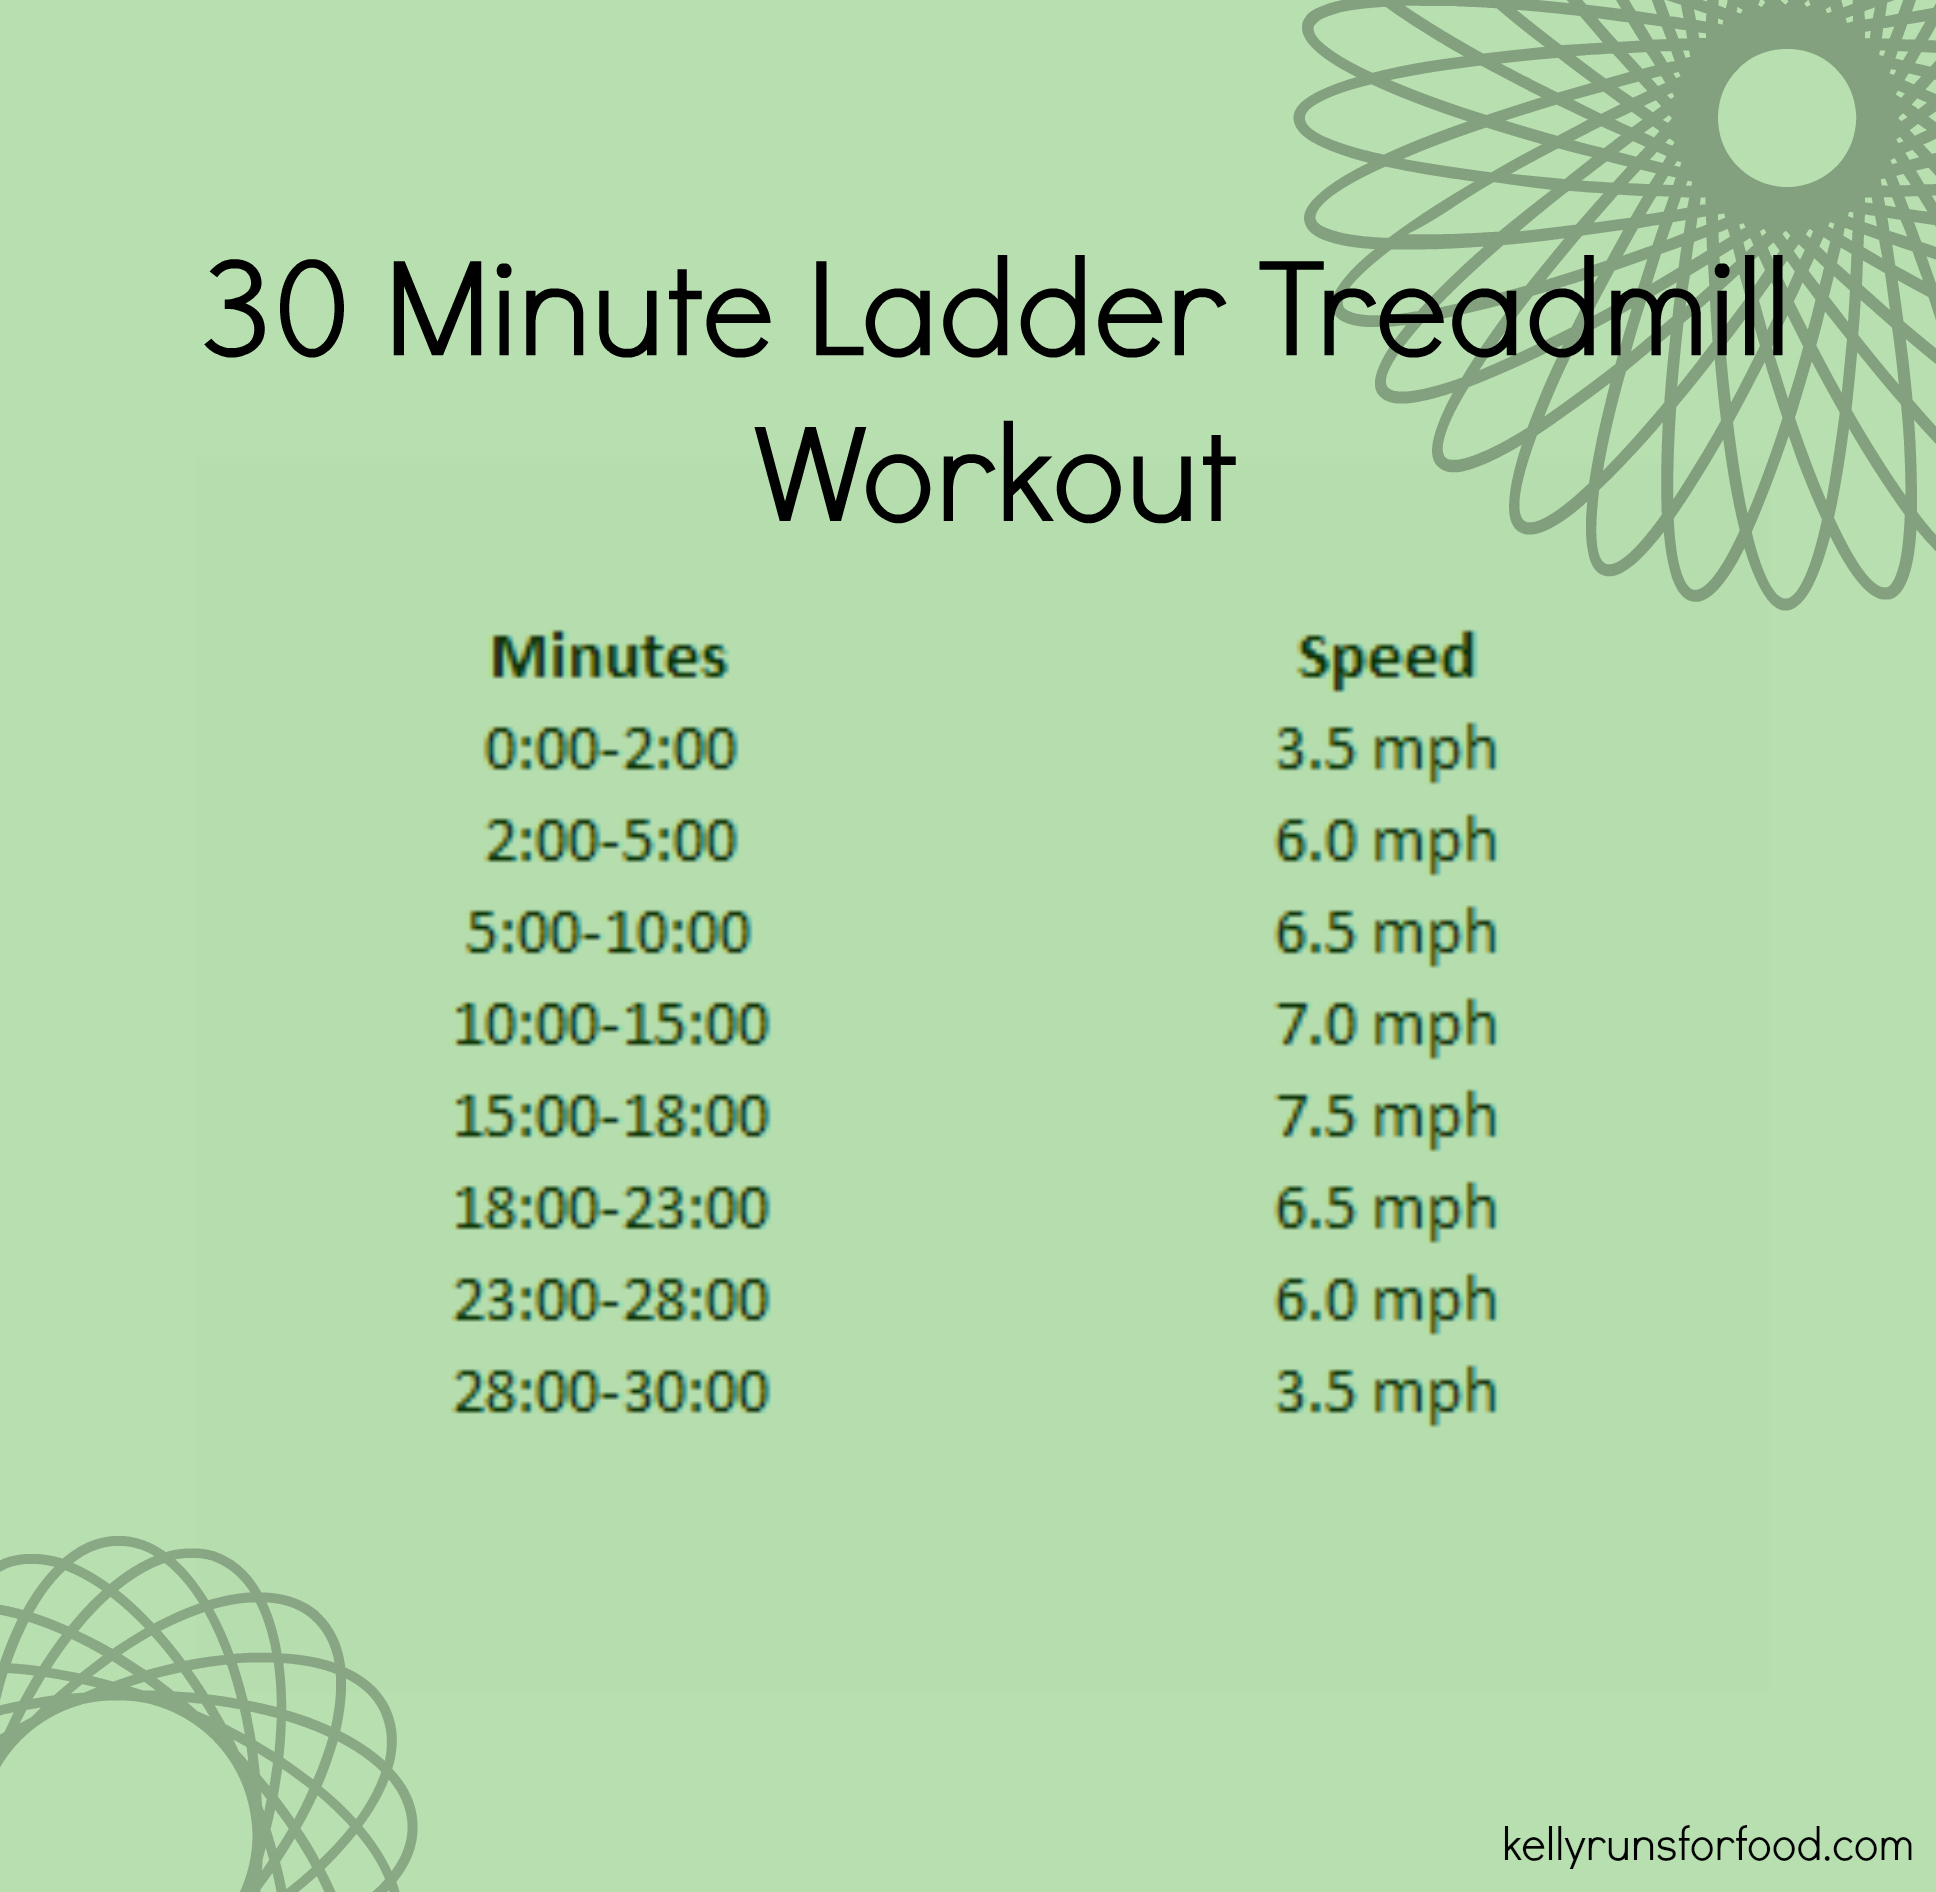 Ladder Treadmill Workout